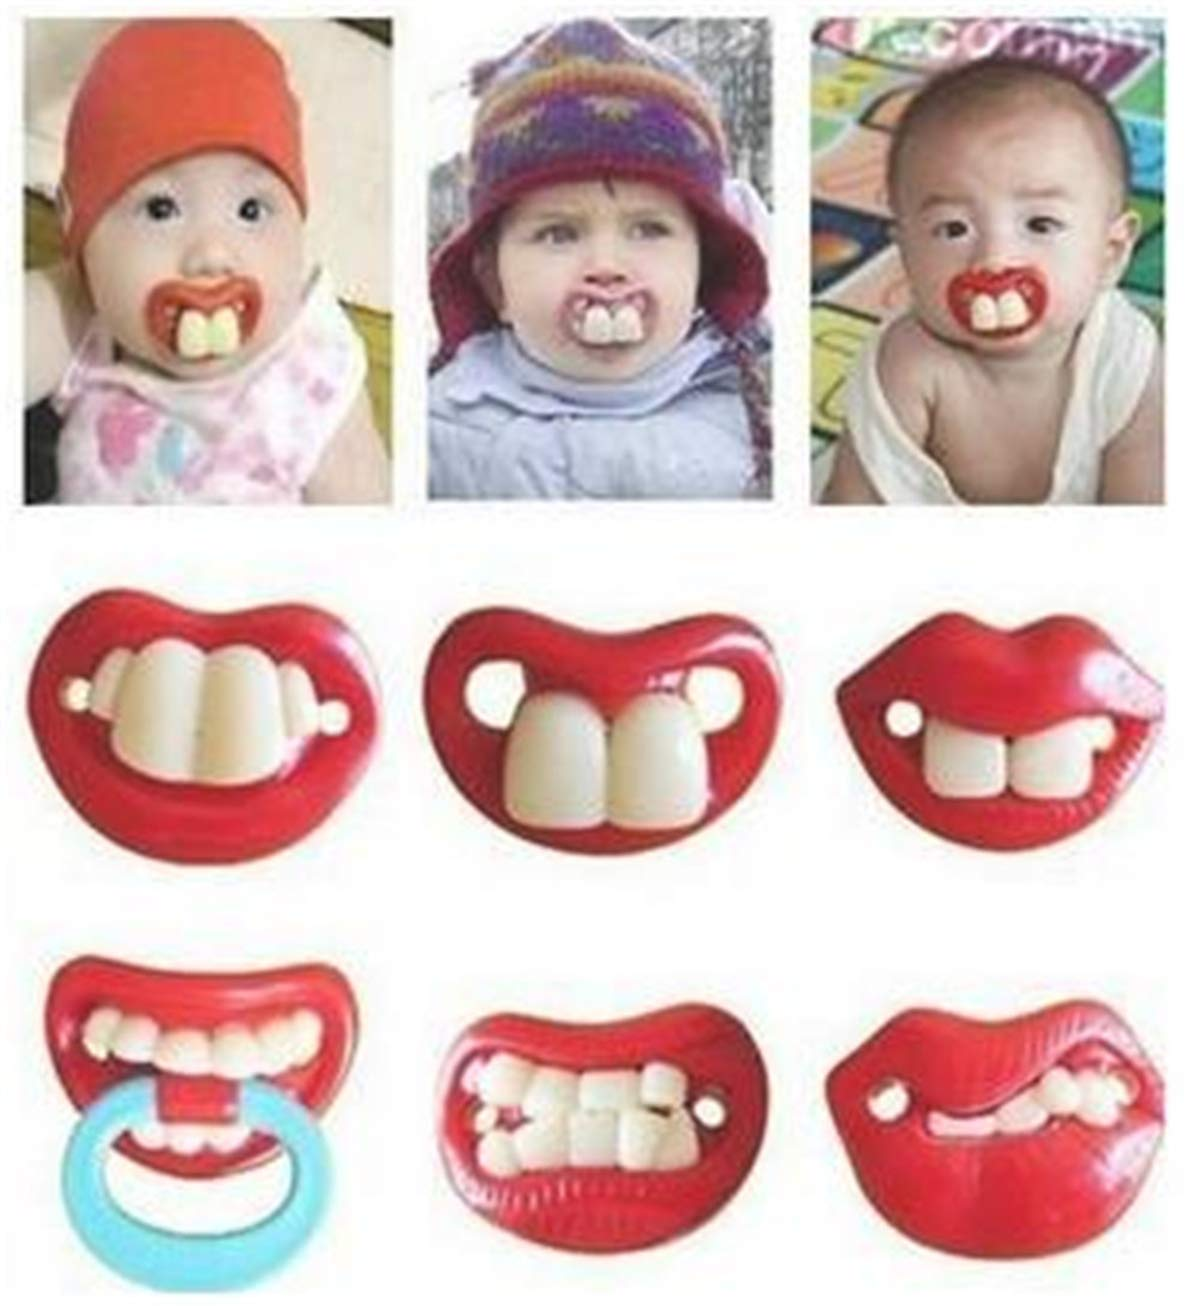 6pcs Unisex Funny Teeth and Red Lips Pacifiers, Cute Red Lip Designed Baby Pacifiers for Soothe Your Newborn Baby, Perfect Baby Shower Gift for Your Little Boys Or Girls! by Weahre